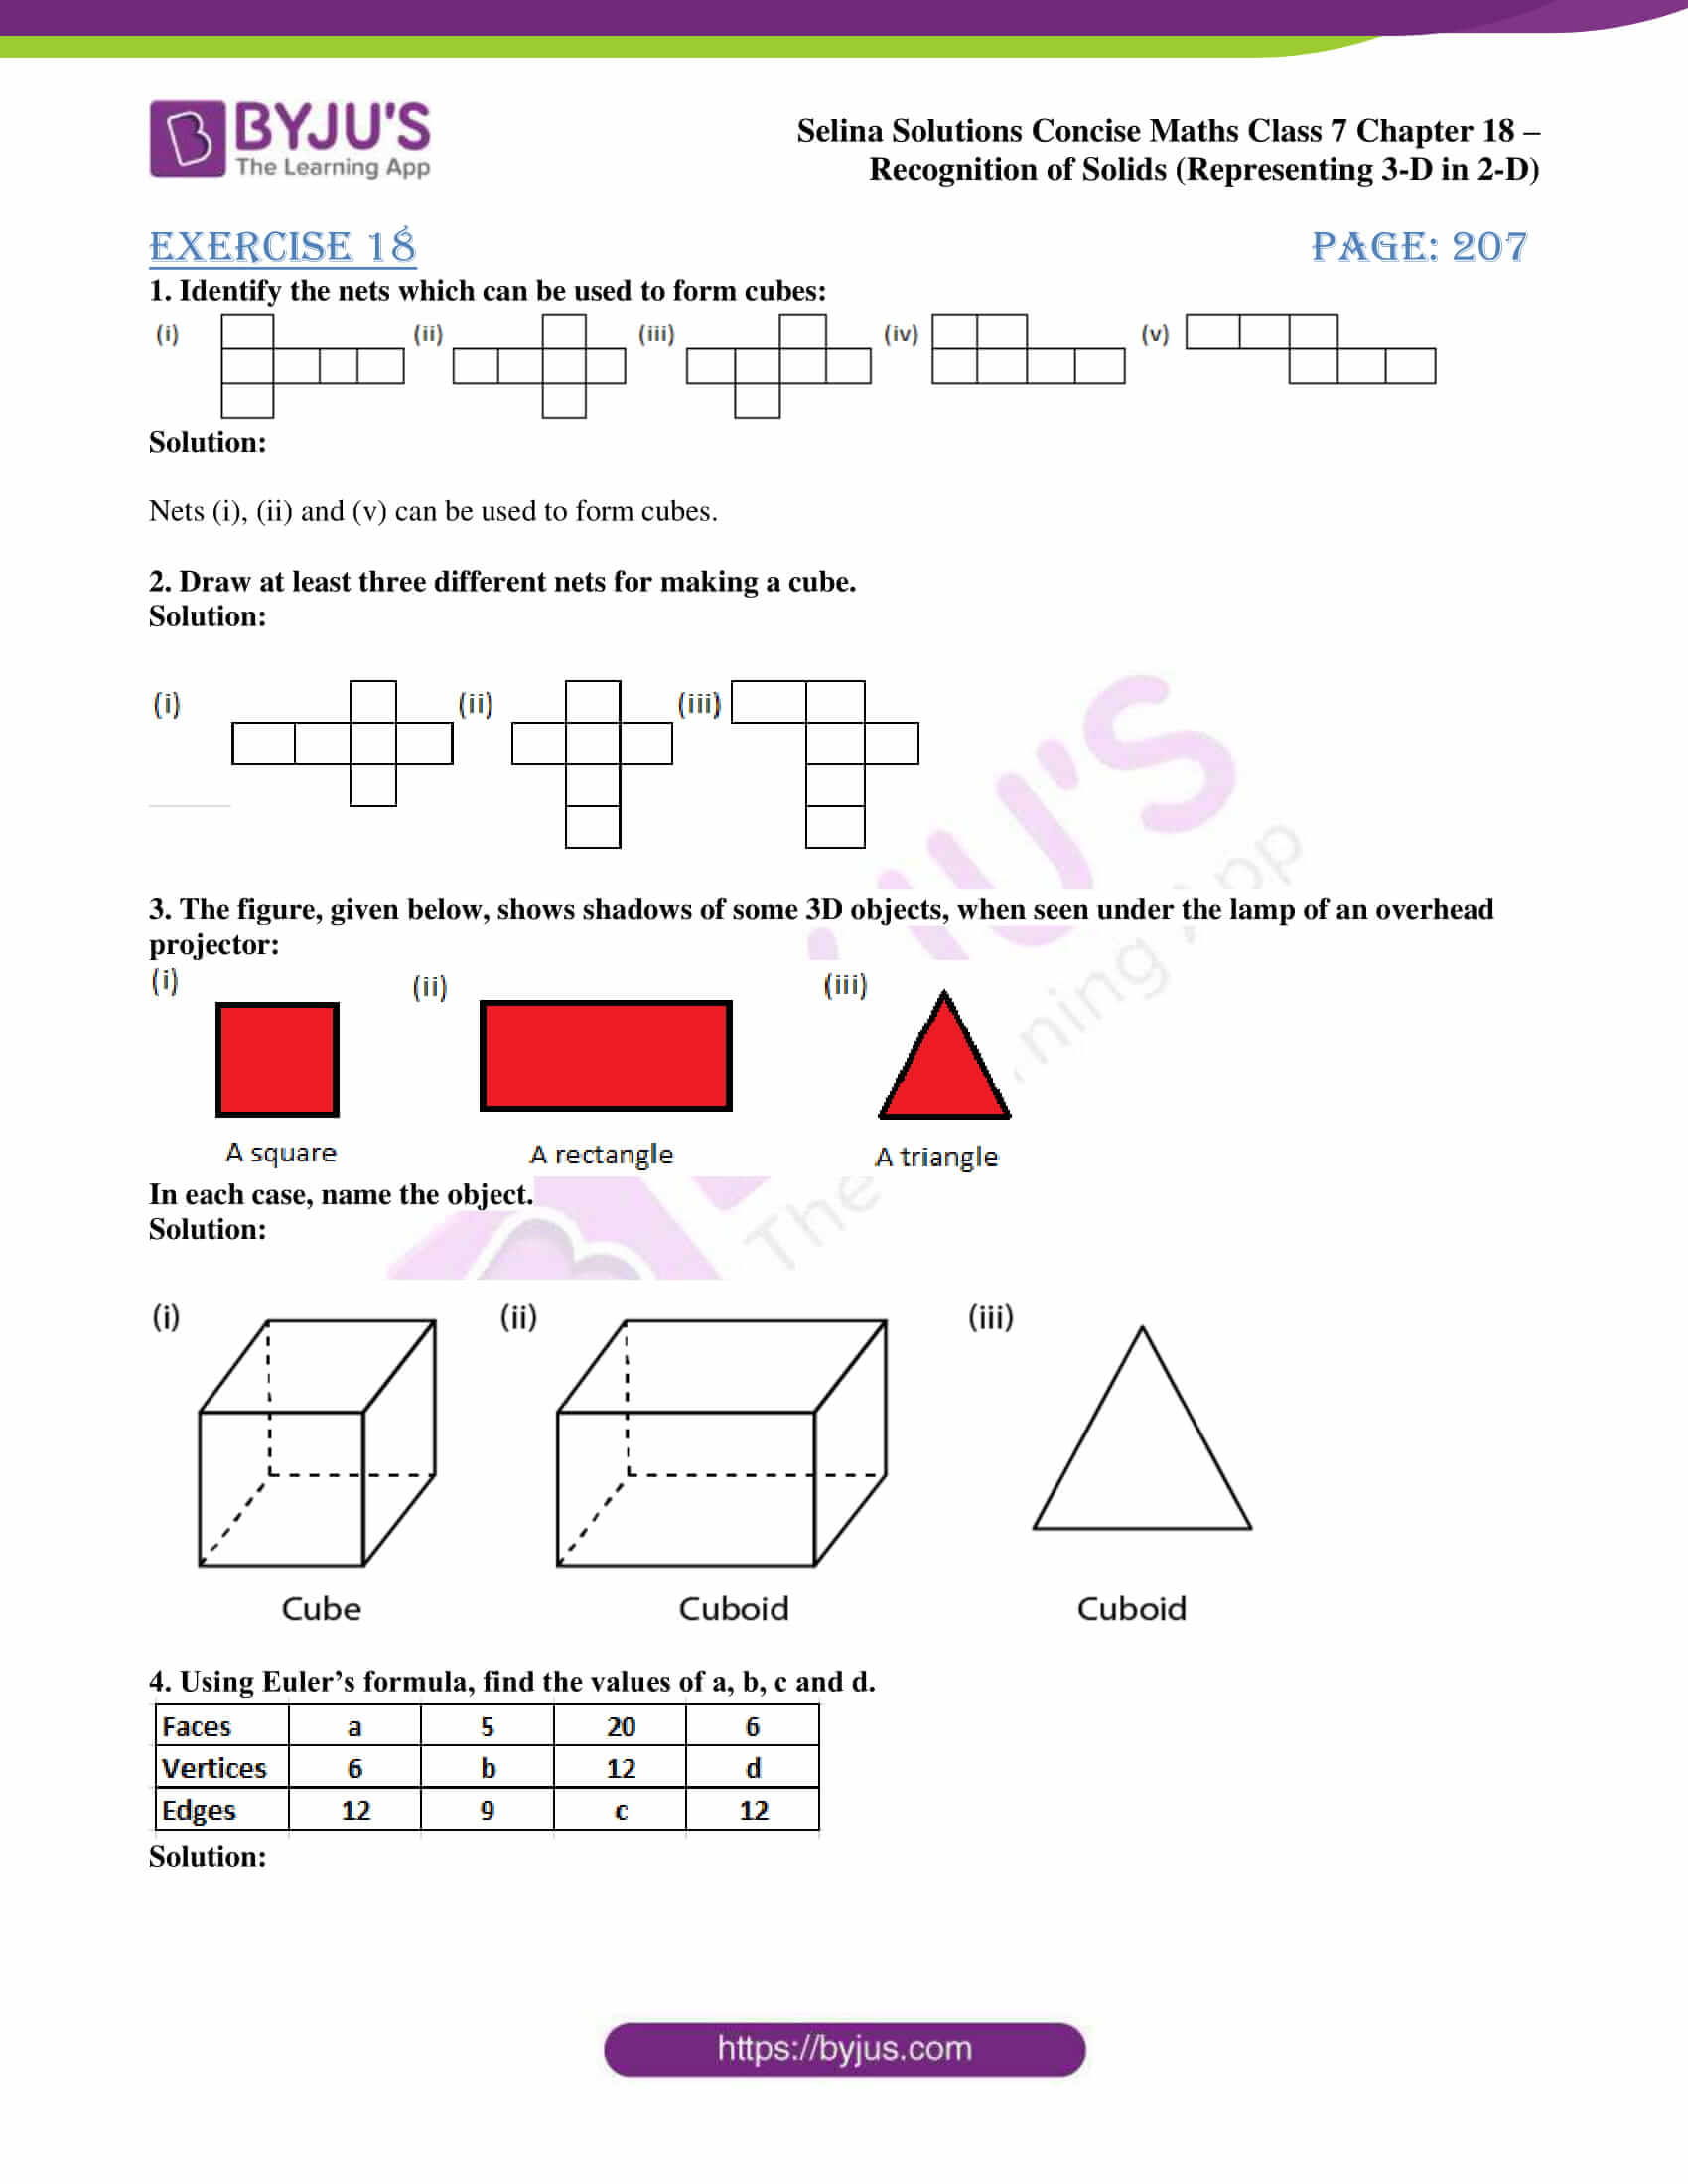 selina sol concise maths class 7 chapter 18 1